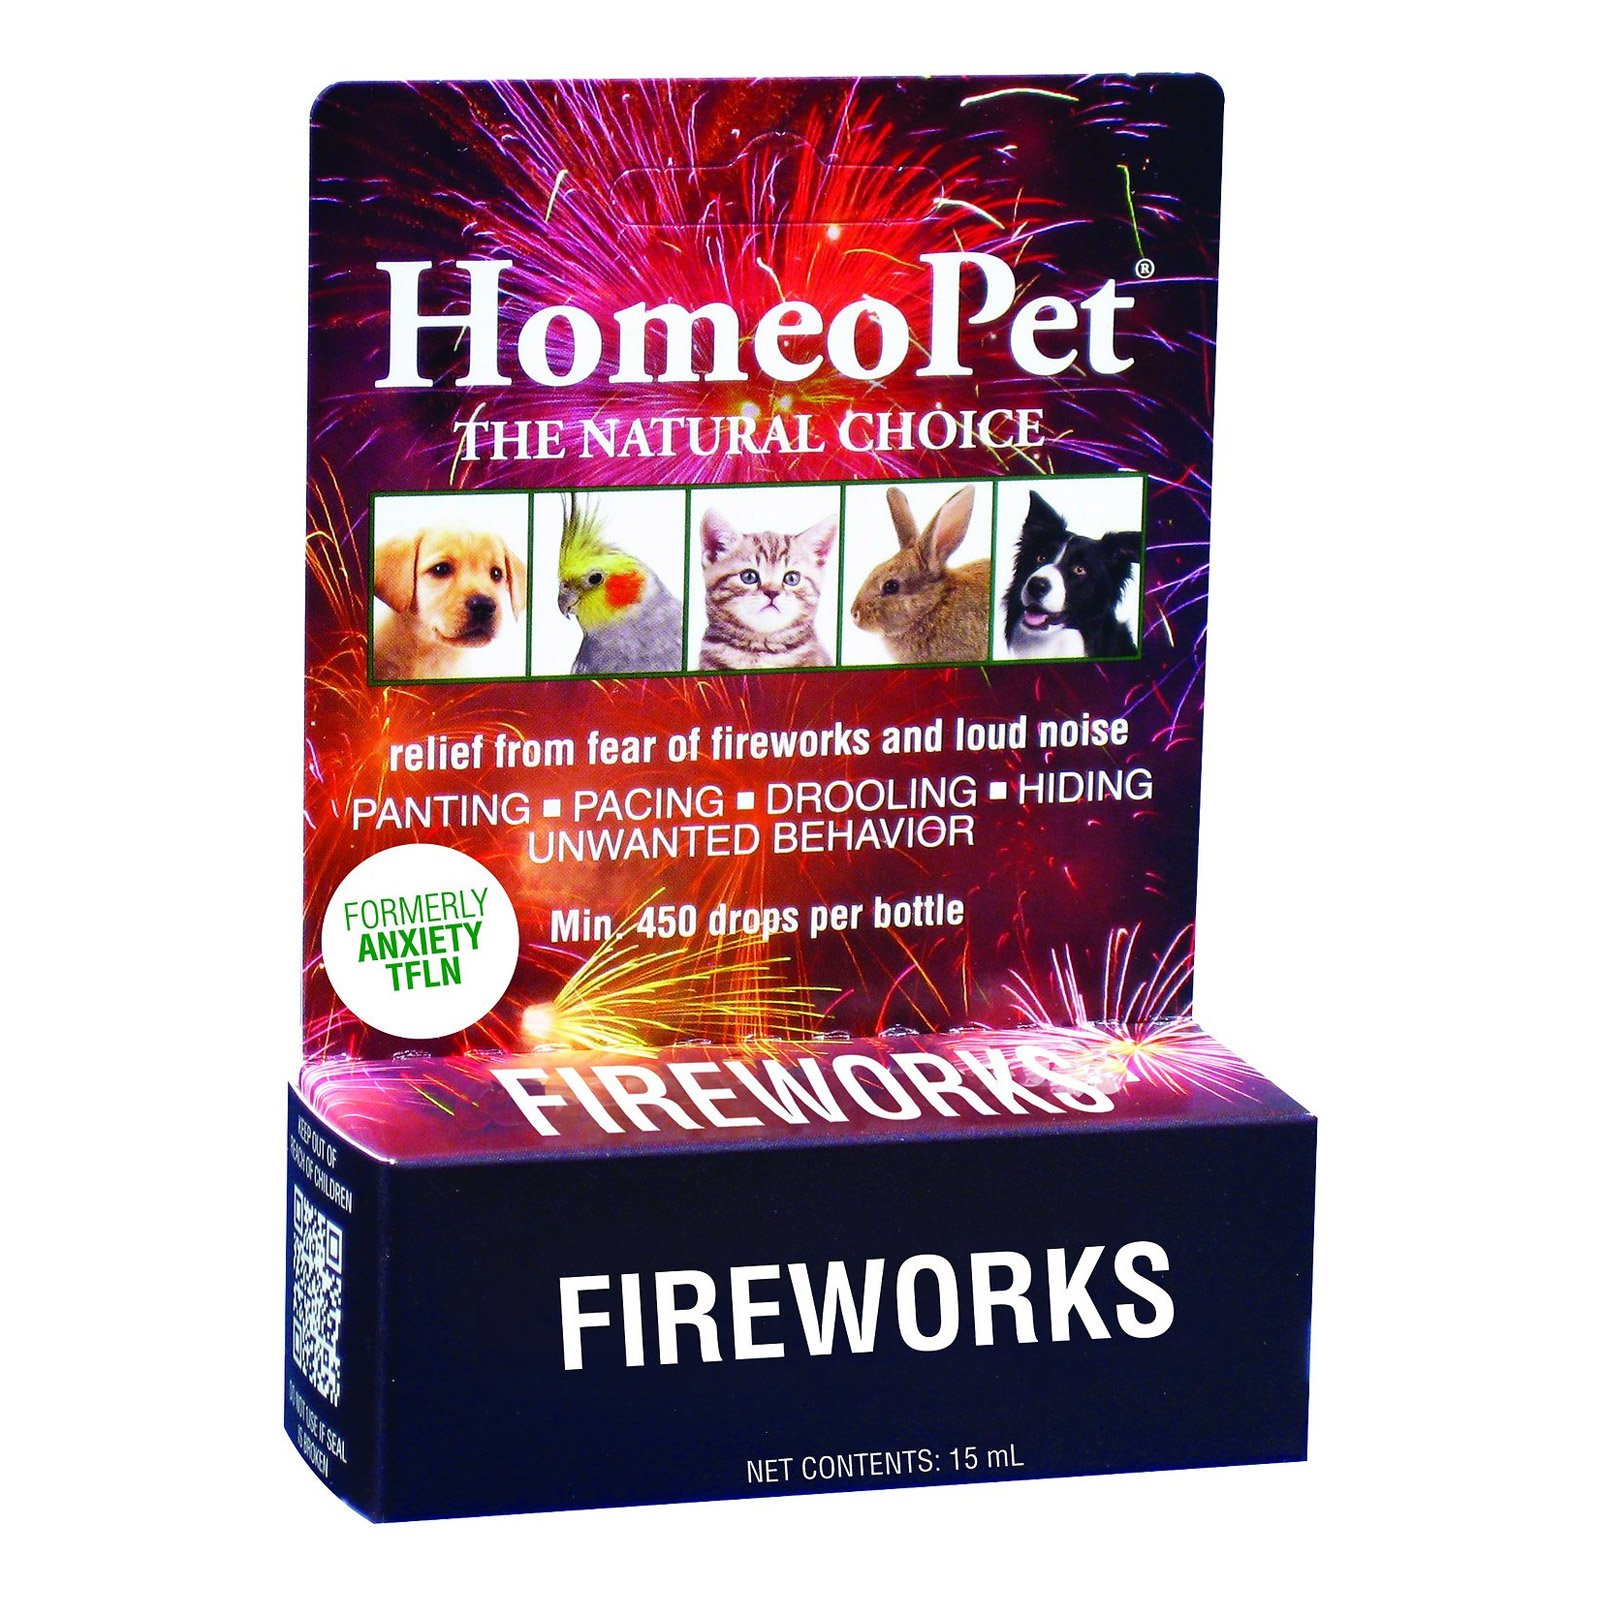 Anxiety TFLN for Homeopathic Supplies